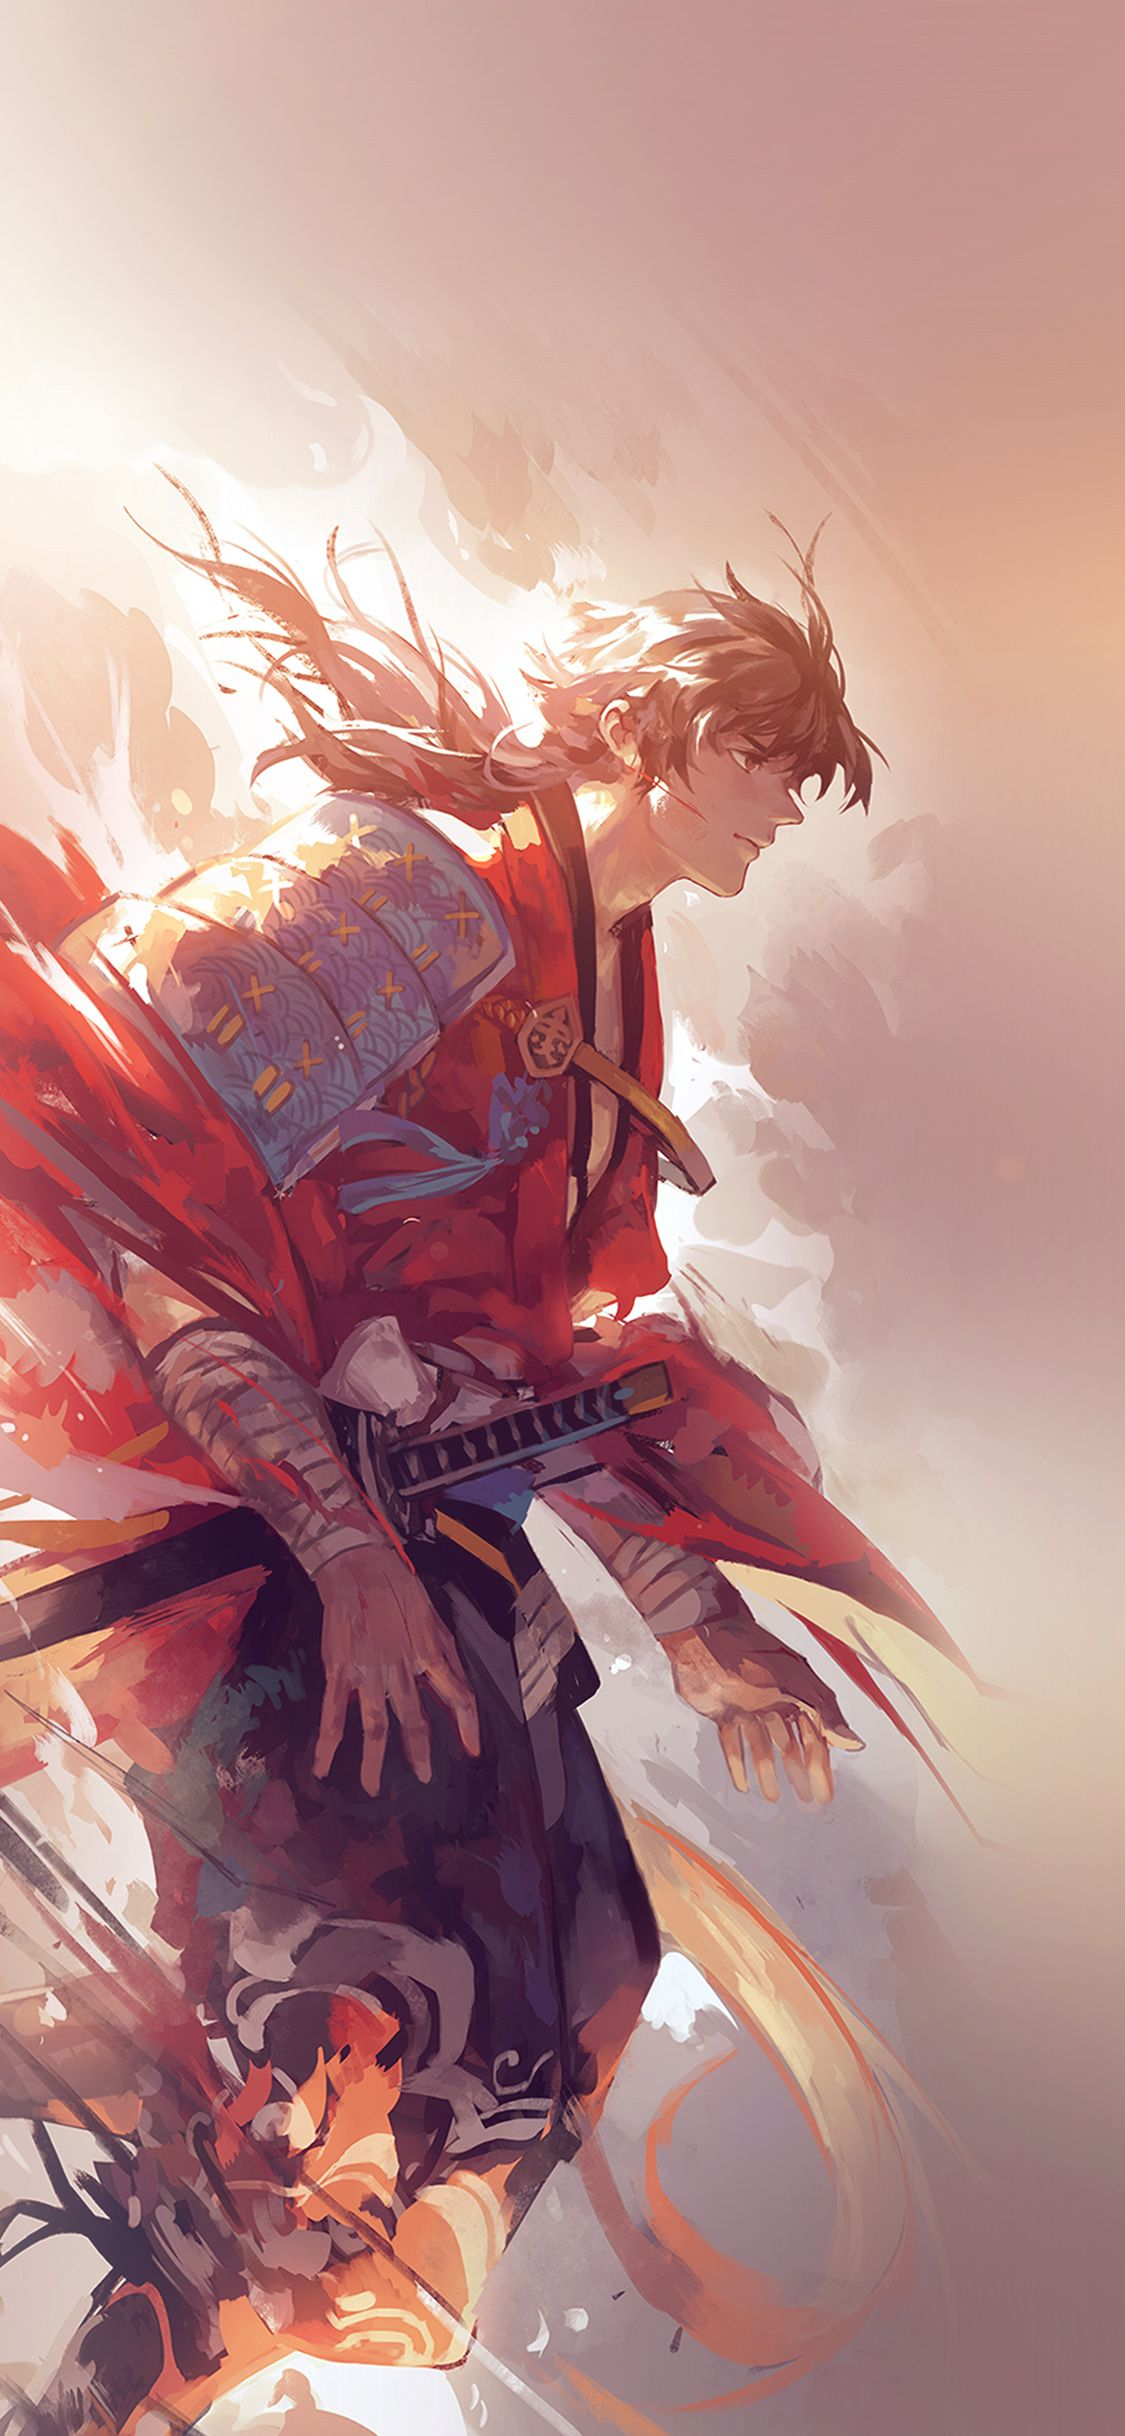 Aw64 Hanyijie Hero Red Handsomeillustration Art Anime Flare Via Http Iphonexpapers Com Wallpapers For Iphone X Anime Art Anime Wallpaper